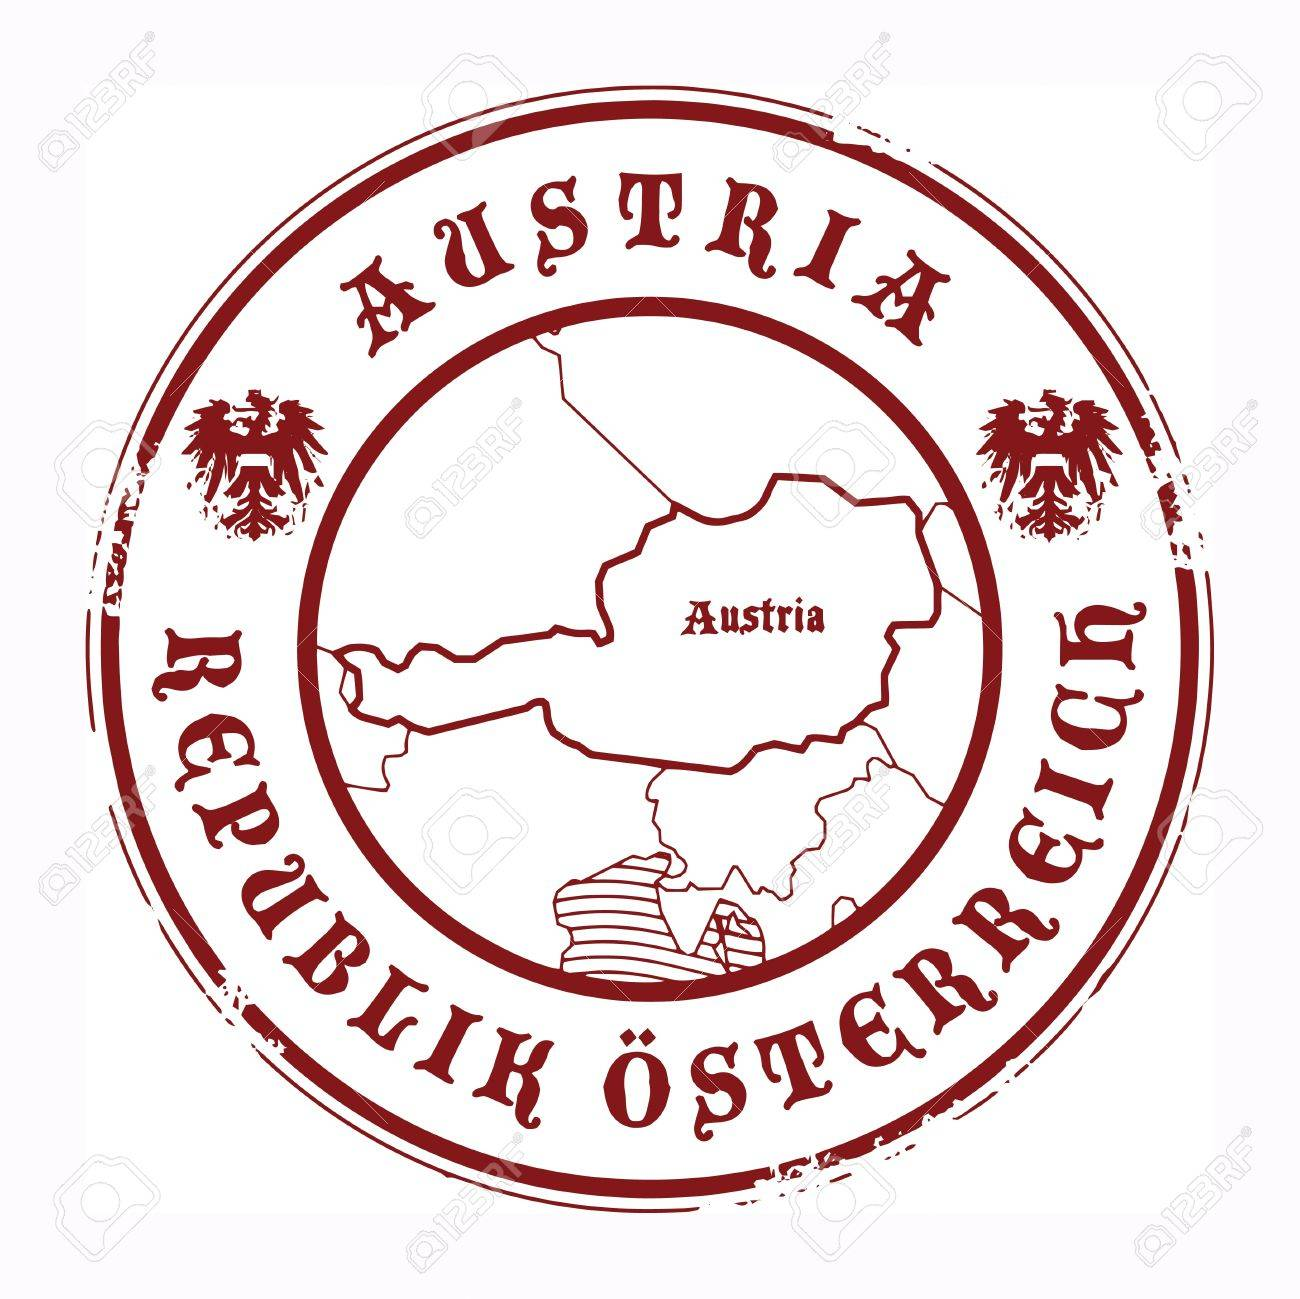 Grunge Rubber Stamp With The Name And Map Of Austria Stock Vector